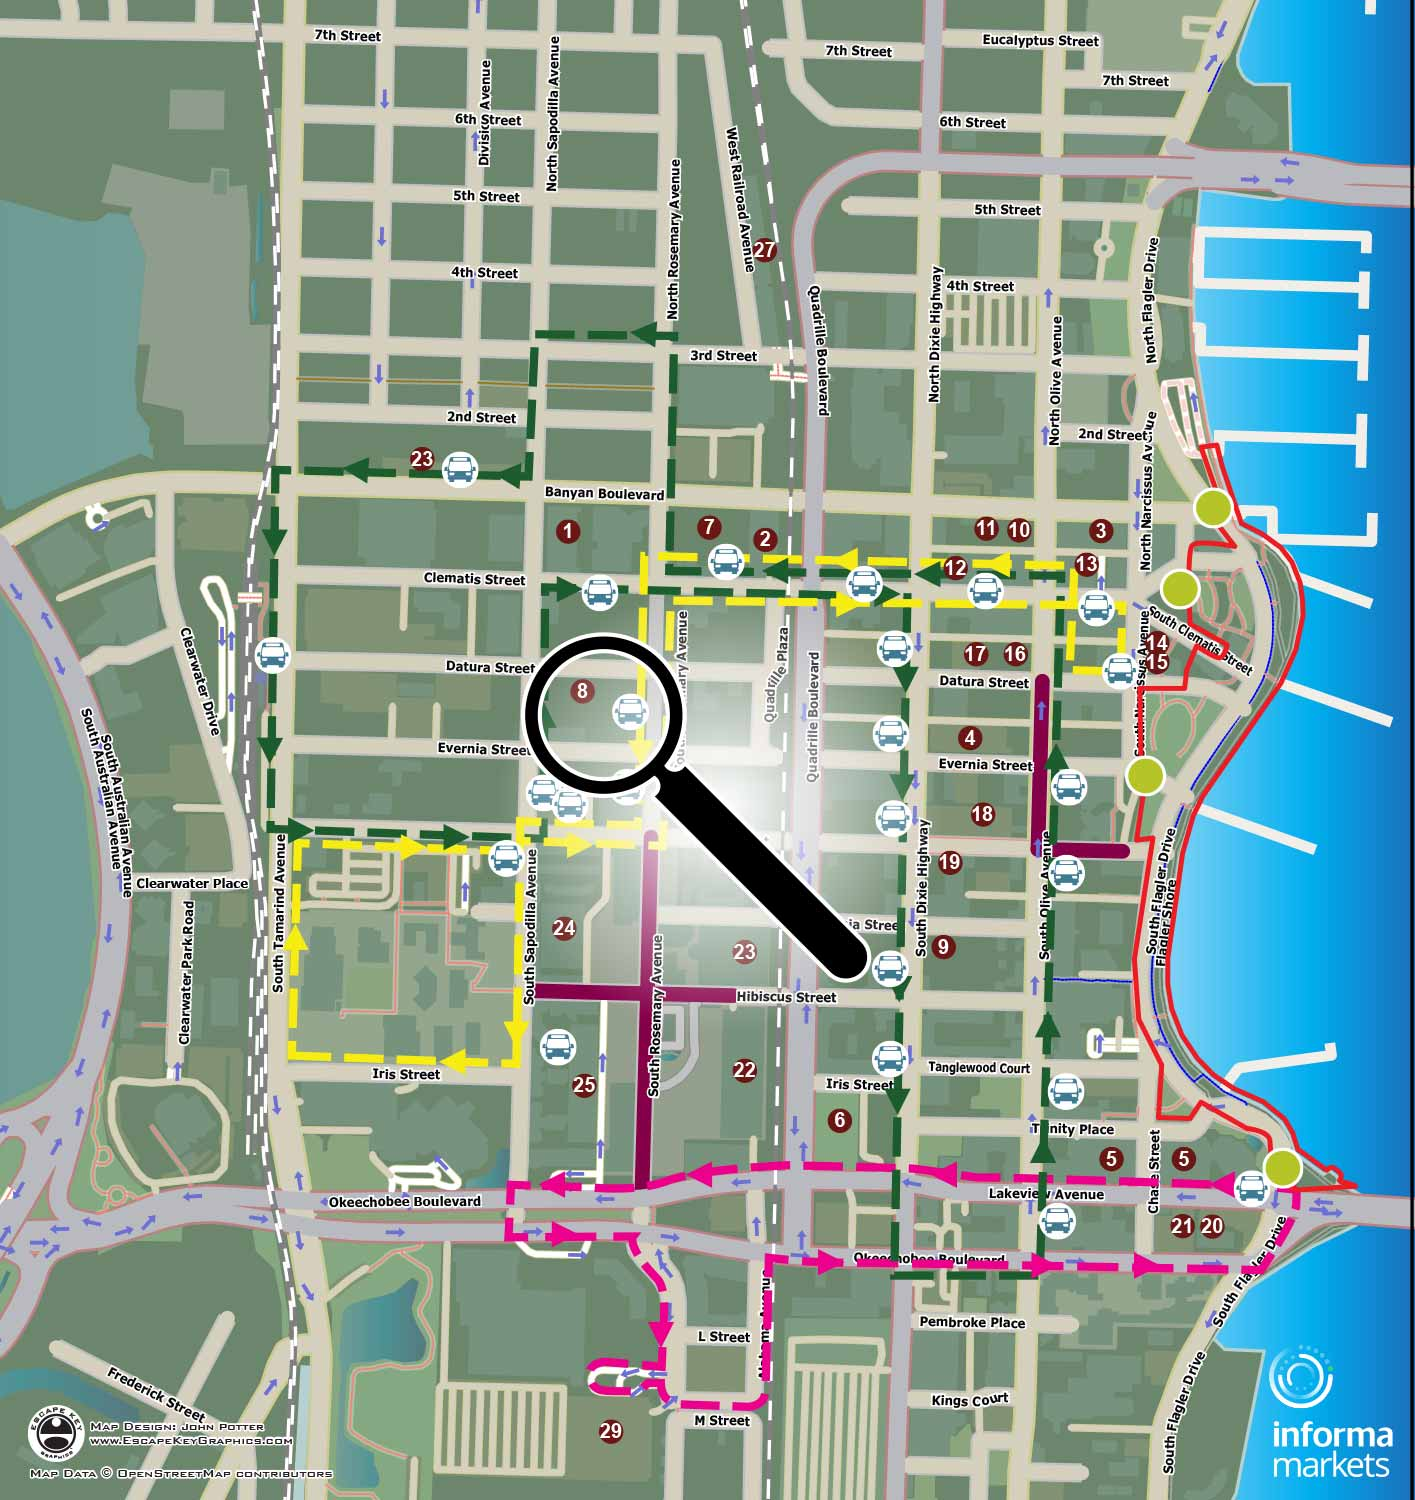 boat show parking and transportation map